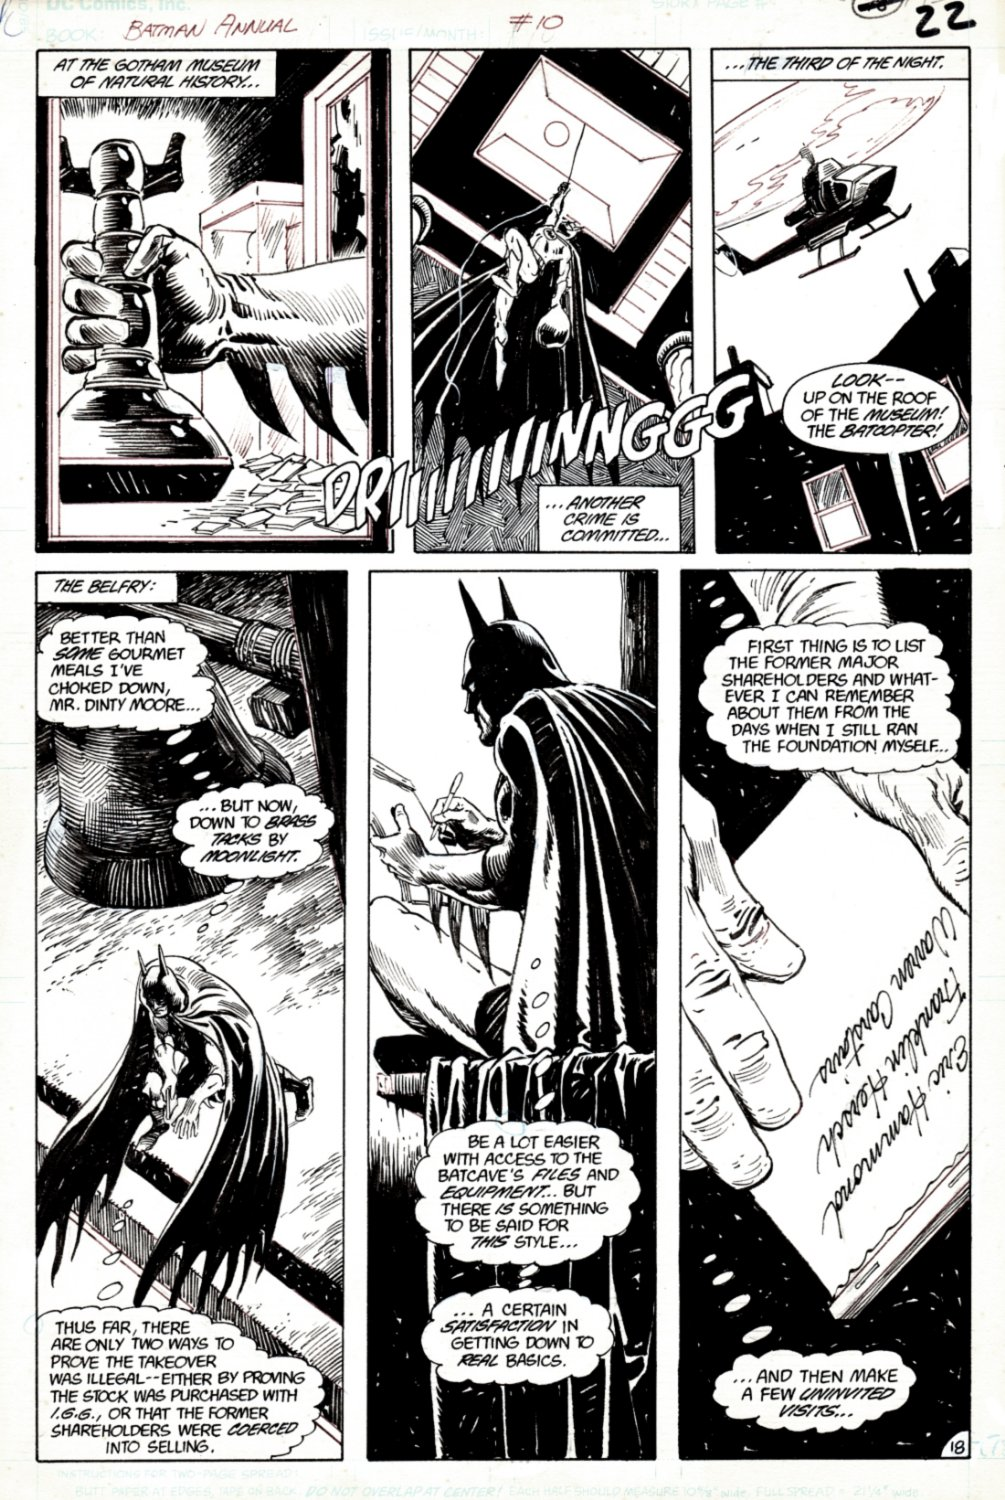 Batman Annual #10 p 18 (SOLD LIVE ON 'DUELING DEALERS OF COMIC ART' EPISODE #35 PODCAST ON 9-4-2021(RE-WATCH THIS FUNNY ART SELLING SHOW HERE)